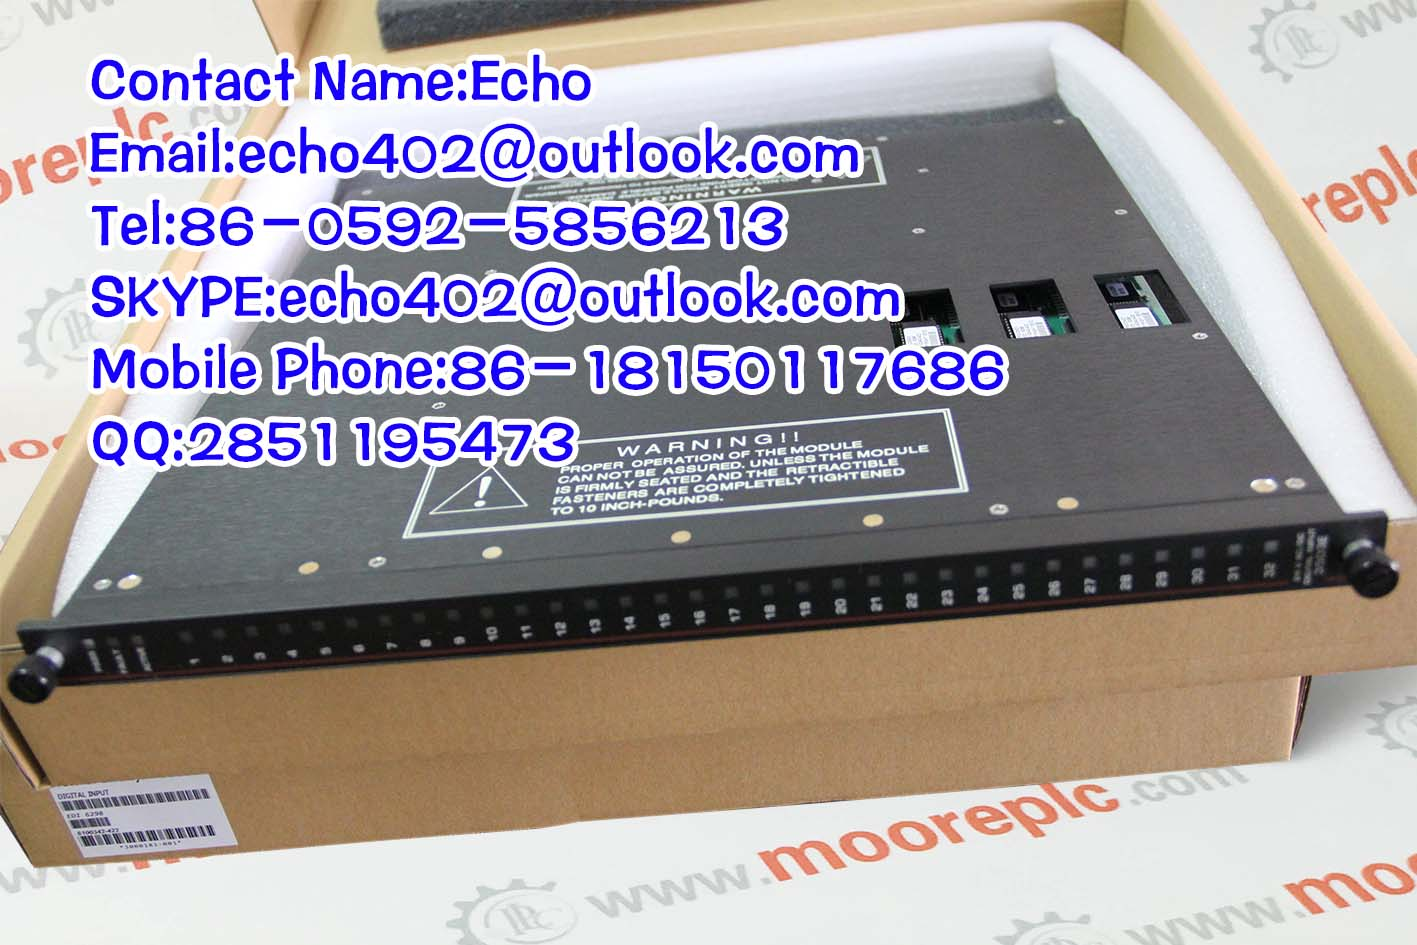 BWU1568 AS-I 3.0 in stock